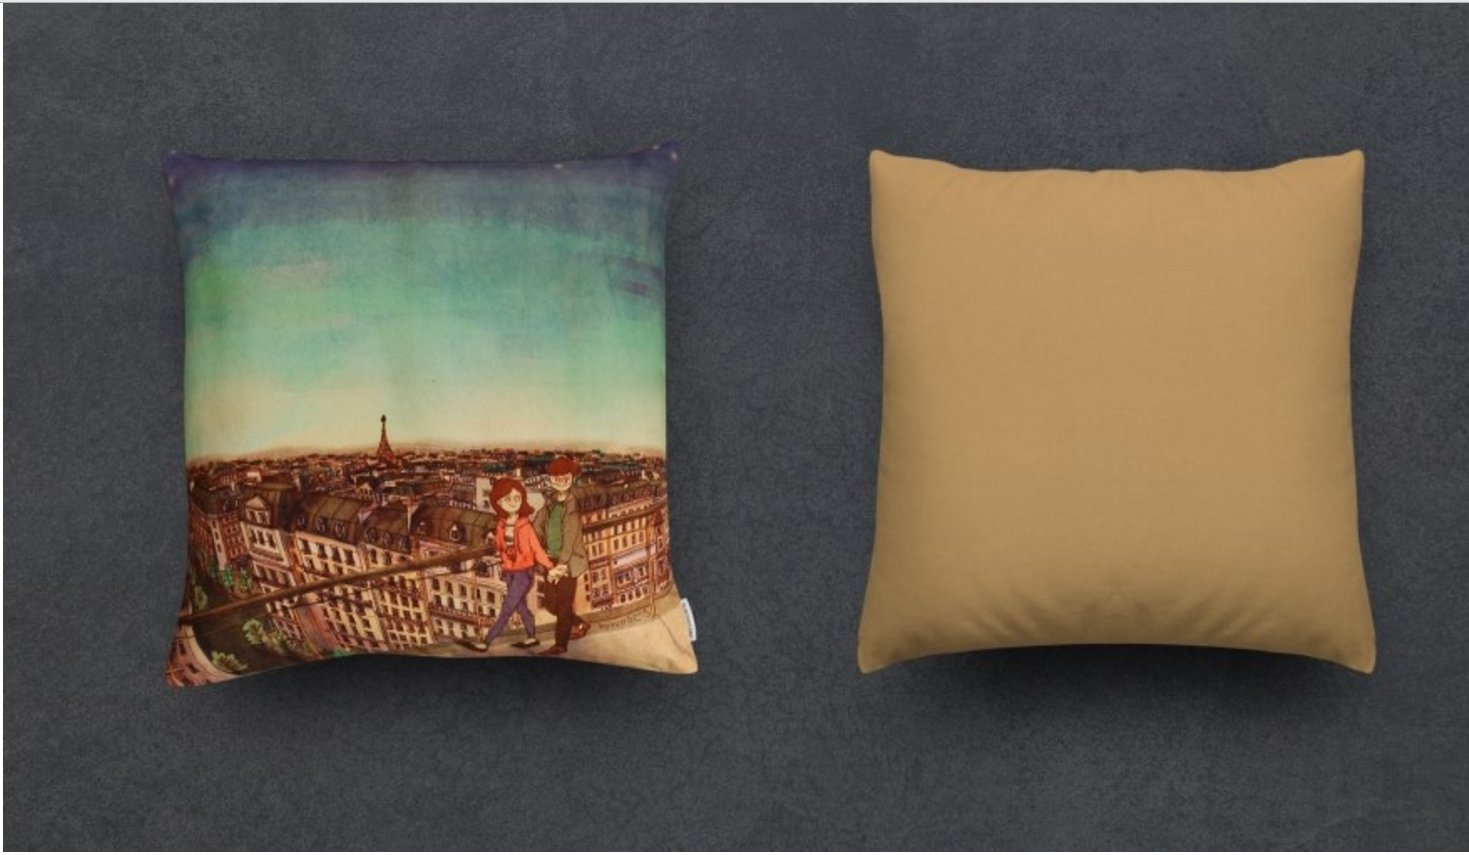 Puuung Illustration Cushion Love is Grafolio Couple Love Story Picture Present (45x45cm(17.7''x17.7'') Cushion, When the evening closed) by Puuung (Image #1)